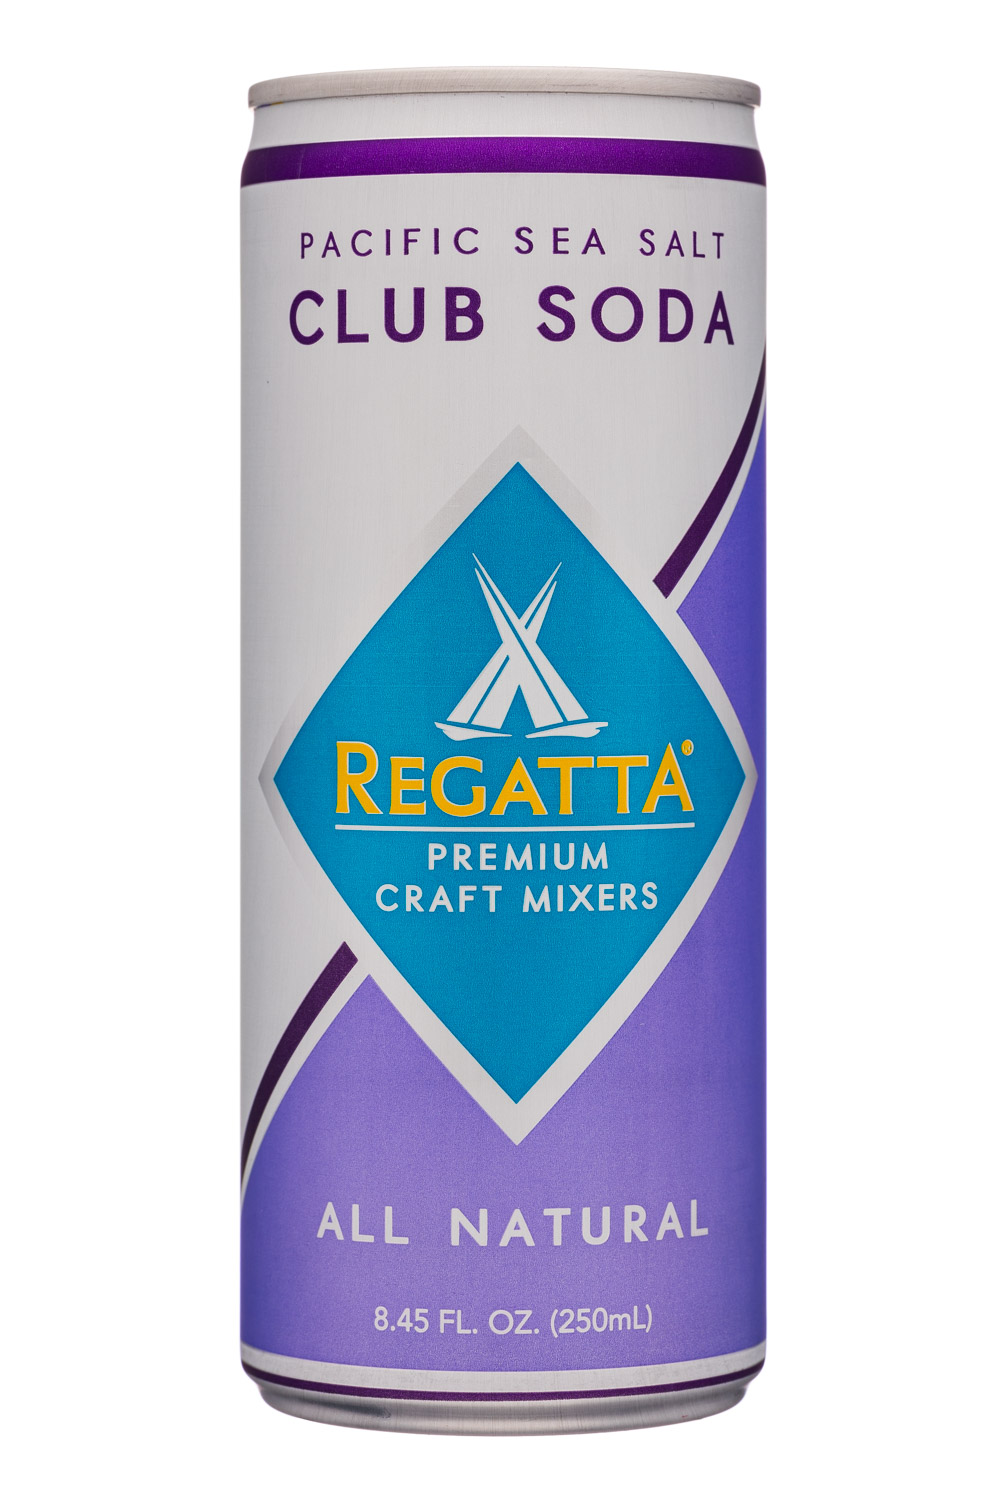 Pacific Sea Salt Club Soda